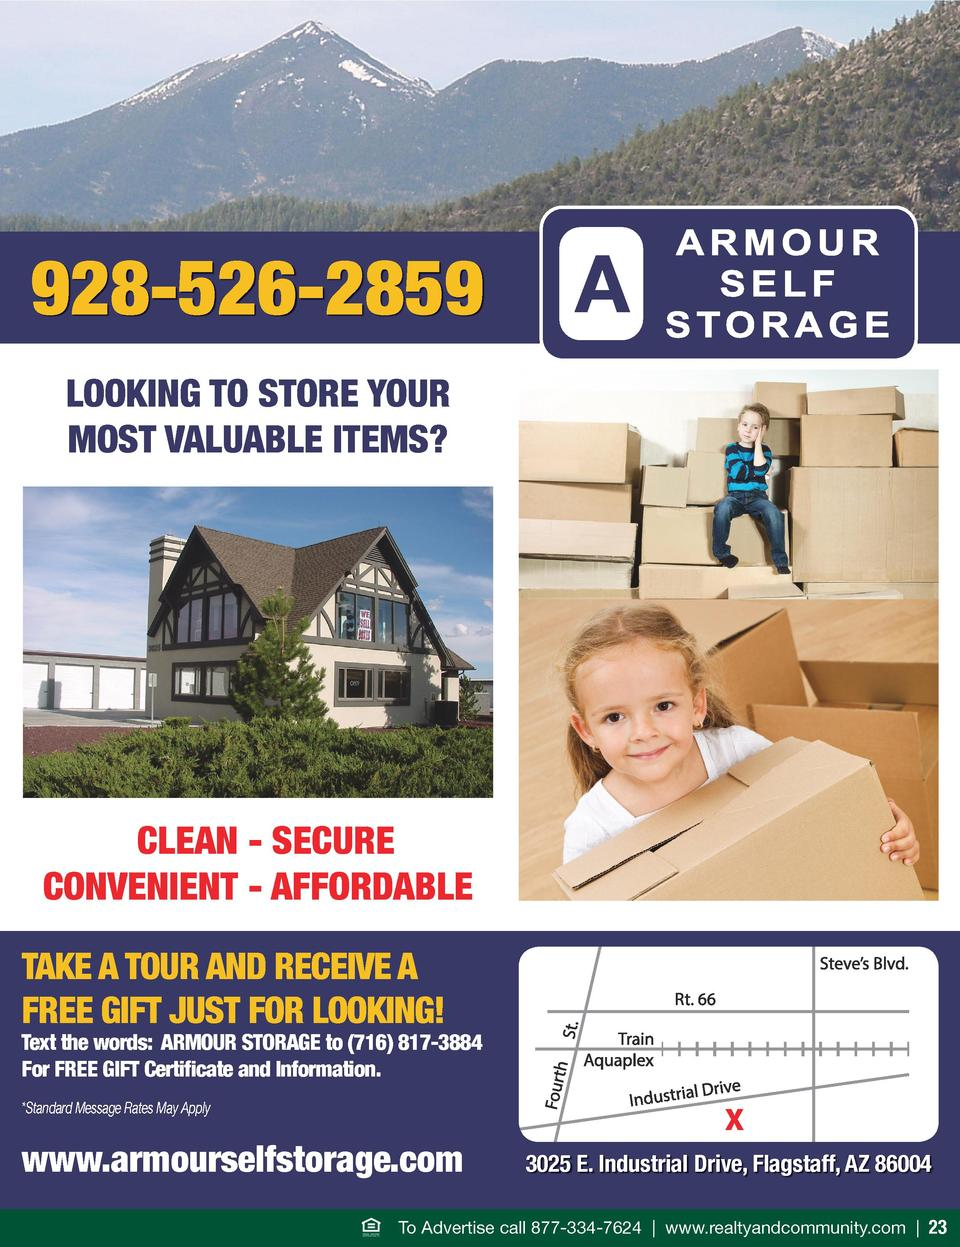 928-526-2859 LOOKING TO STORE YOUR MOST VALUABLE ITEMS   CLEAN - SECURE CONVENIENT - AFFORDABLE TAKE A TOUR AND RECEIVE A ...